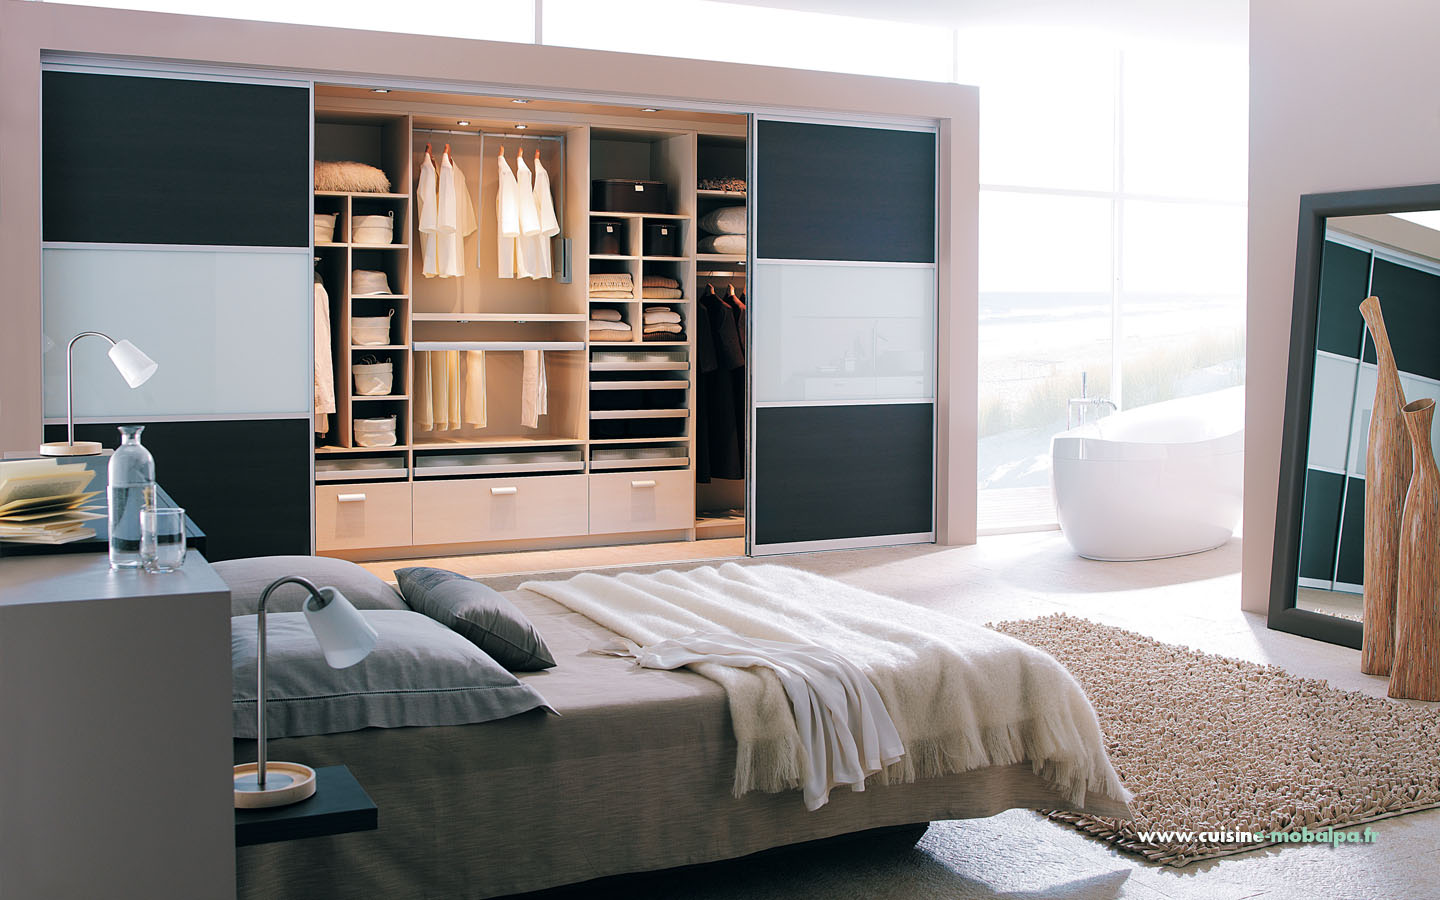 petite chambre avec dressing. Black Bedroom Furniture Sets. Home Design Ideas